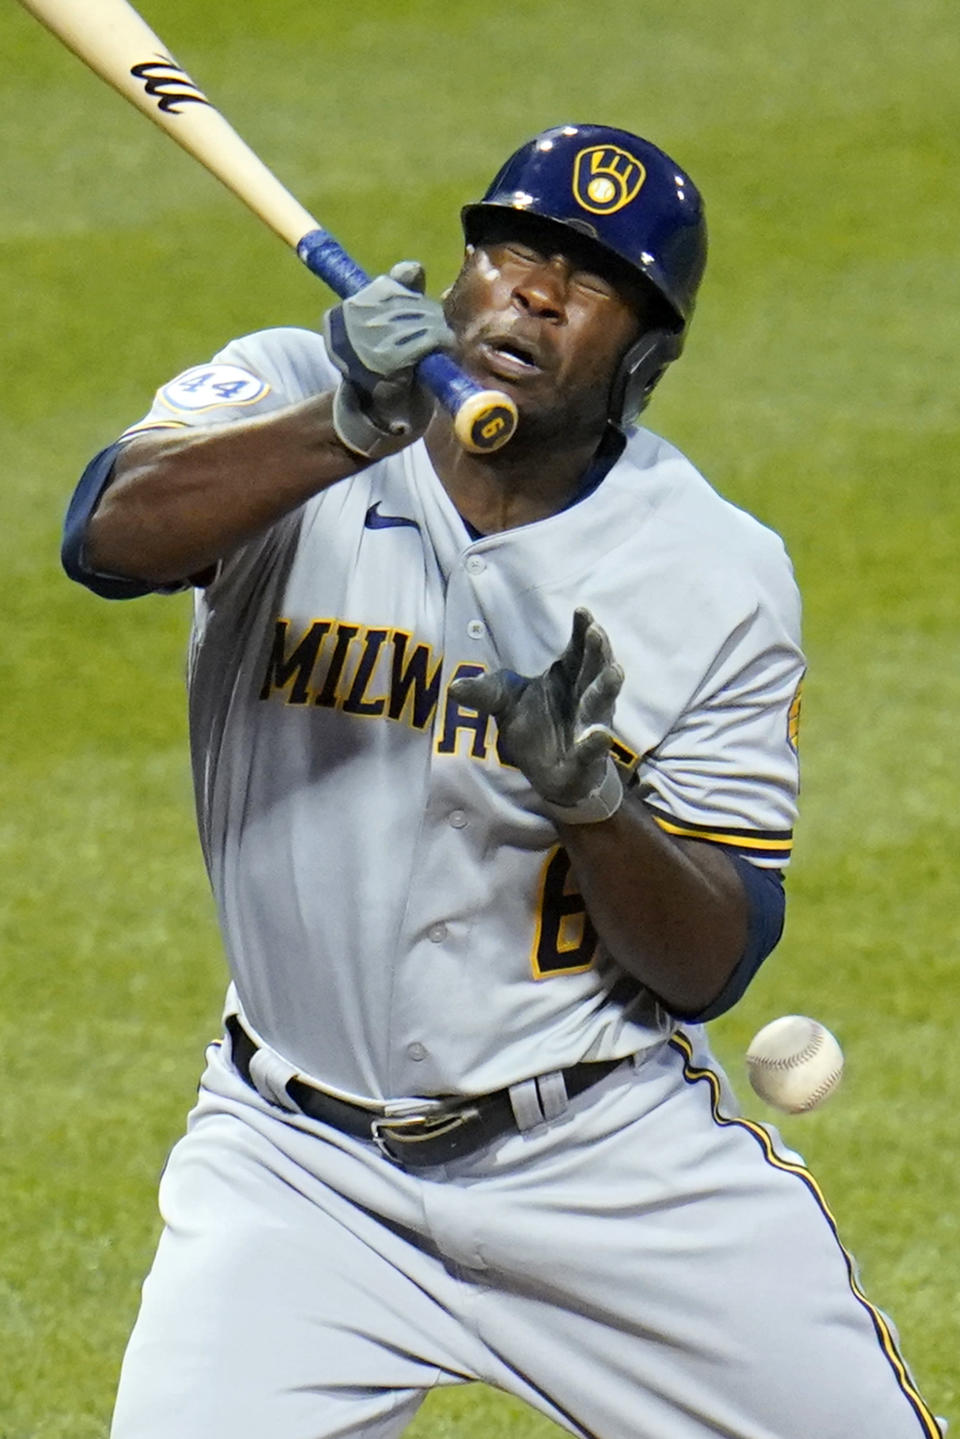 Milwaukee Brewers' Lorenzo Cain is hit by a pitch from Pittsburgh Pirates starting pitcher Max Kranick during the sixth inning of a baseball game in Pittsburgh, Wednesday, July 28, 2021. (AP Photo/Gene J. Puskar)